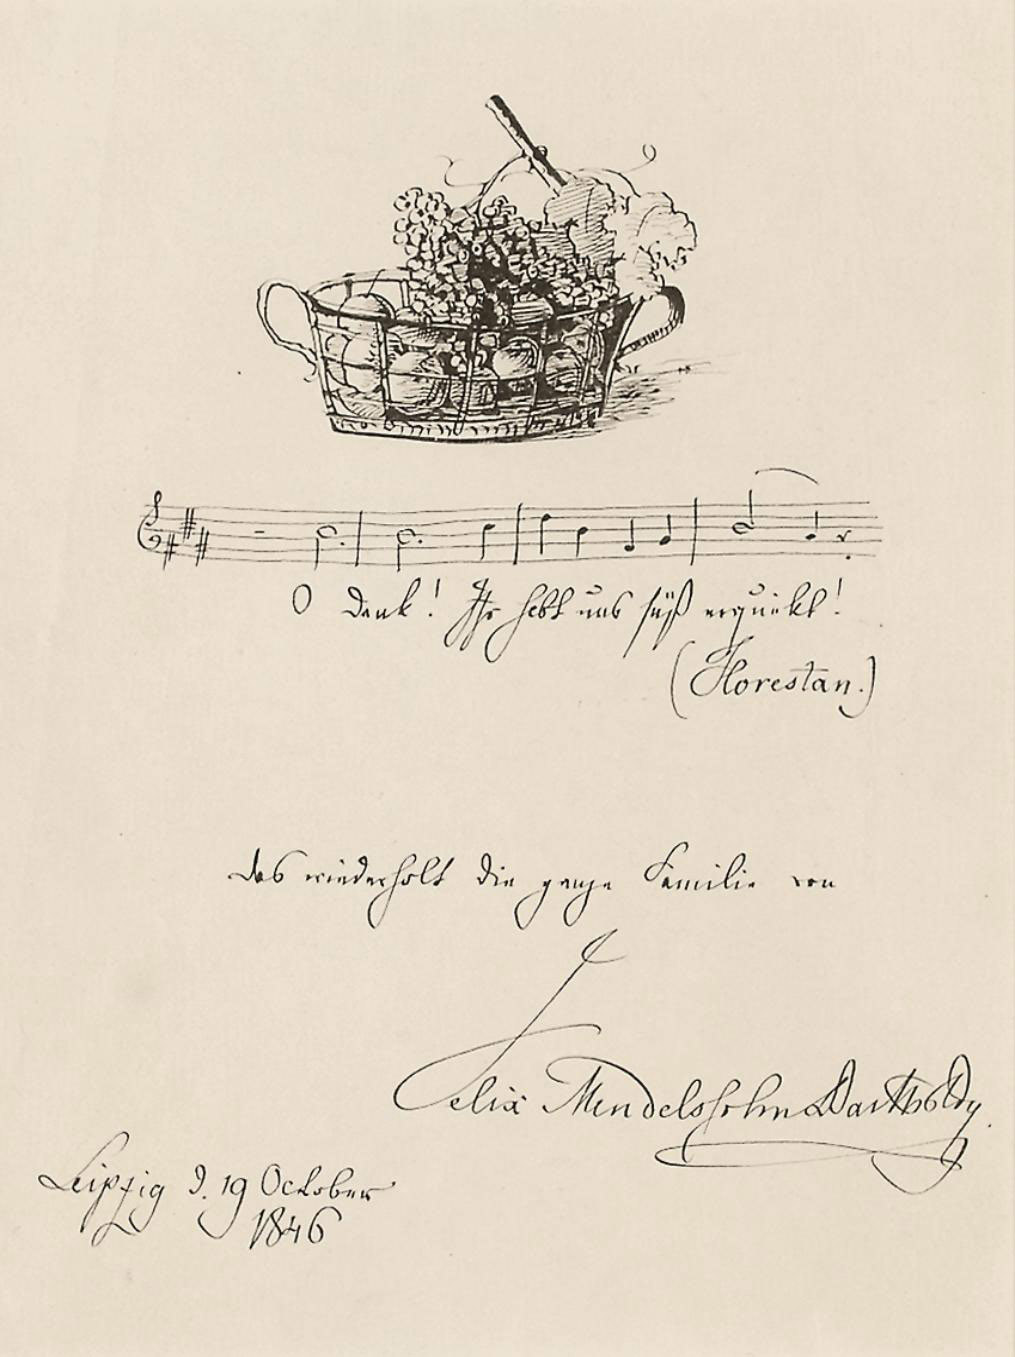 MENDELSSOHN-BARTHOLDY, Felix (1809-1847). Autograph musical quotation, four bars in a single stave from Beethoven's Fidelio, 'O Dank! Ihr habt uns süß erquickt!', signed and subscribed 'Das wiederholt die ganze Familie von Felix Mendelssohn Bartholdy' and ILLUSTRATED WITH A DRAWING OF A BASKET OF FRUIT, Leipzig, 19 October 1846, one page, 4to (175 x 135mm), framed and glazed.